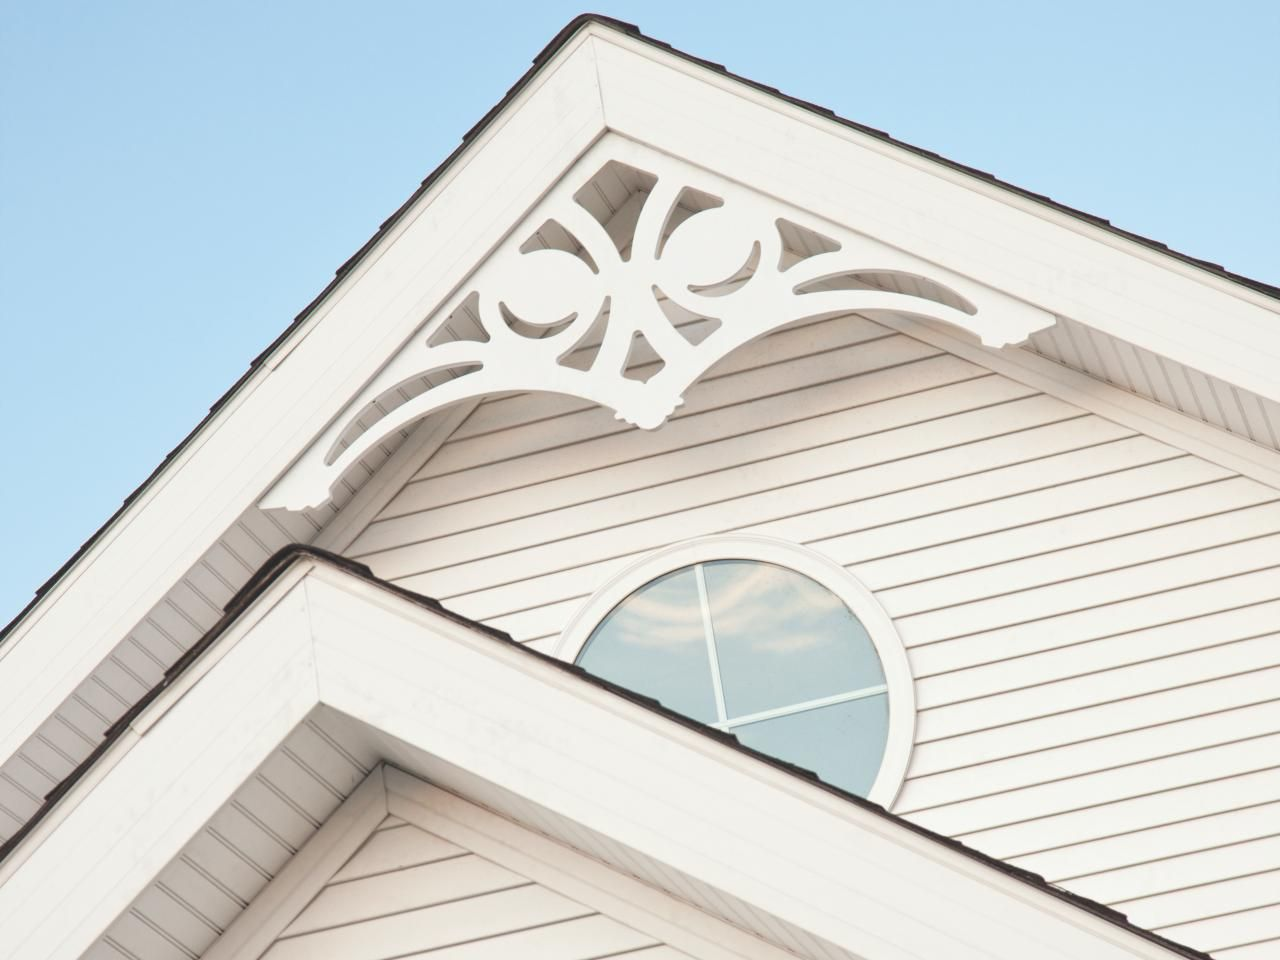 Exterior Trim Molding And Columns Exterior Trim Curb Appeal And Moldings